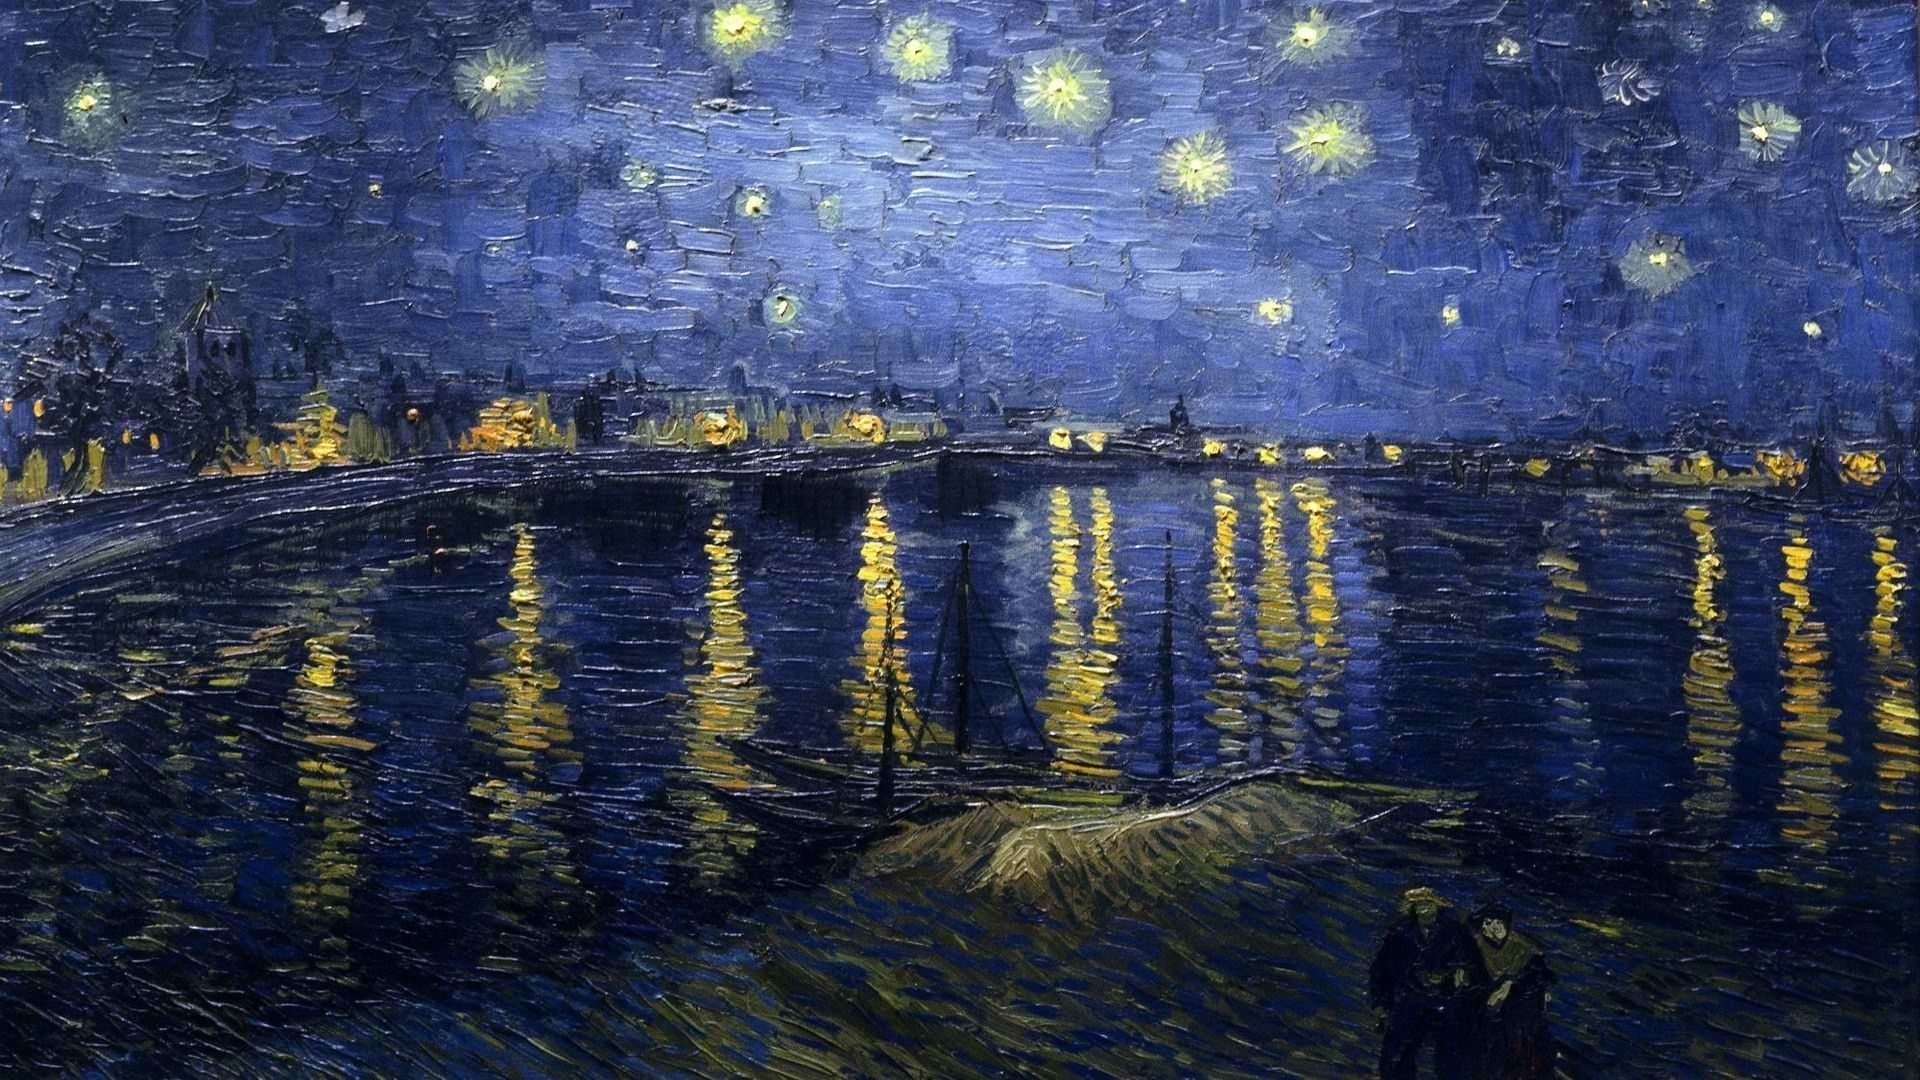 night world vincent van gogh starry night over the rhone 1920x1080